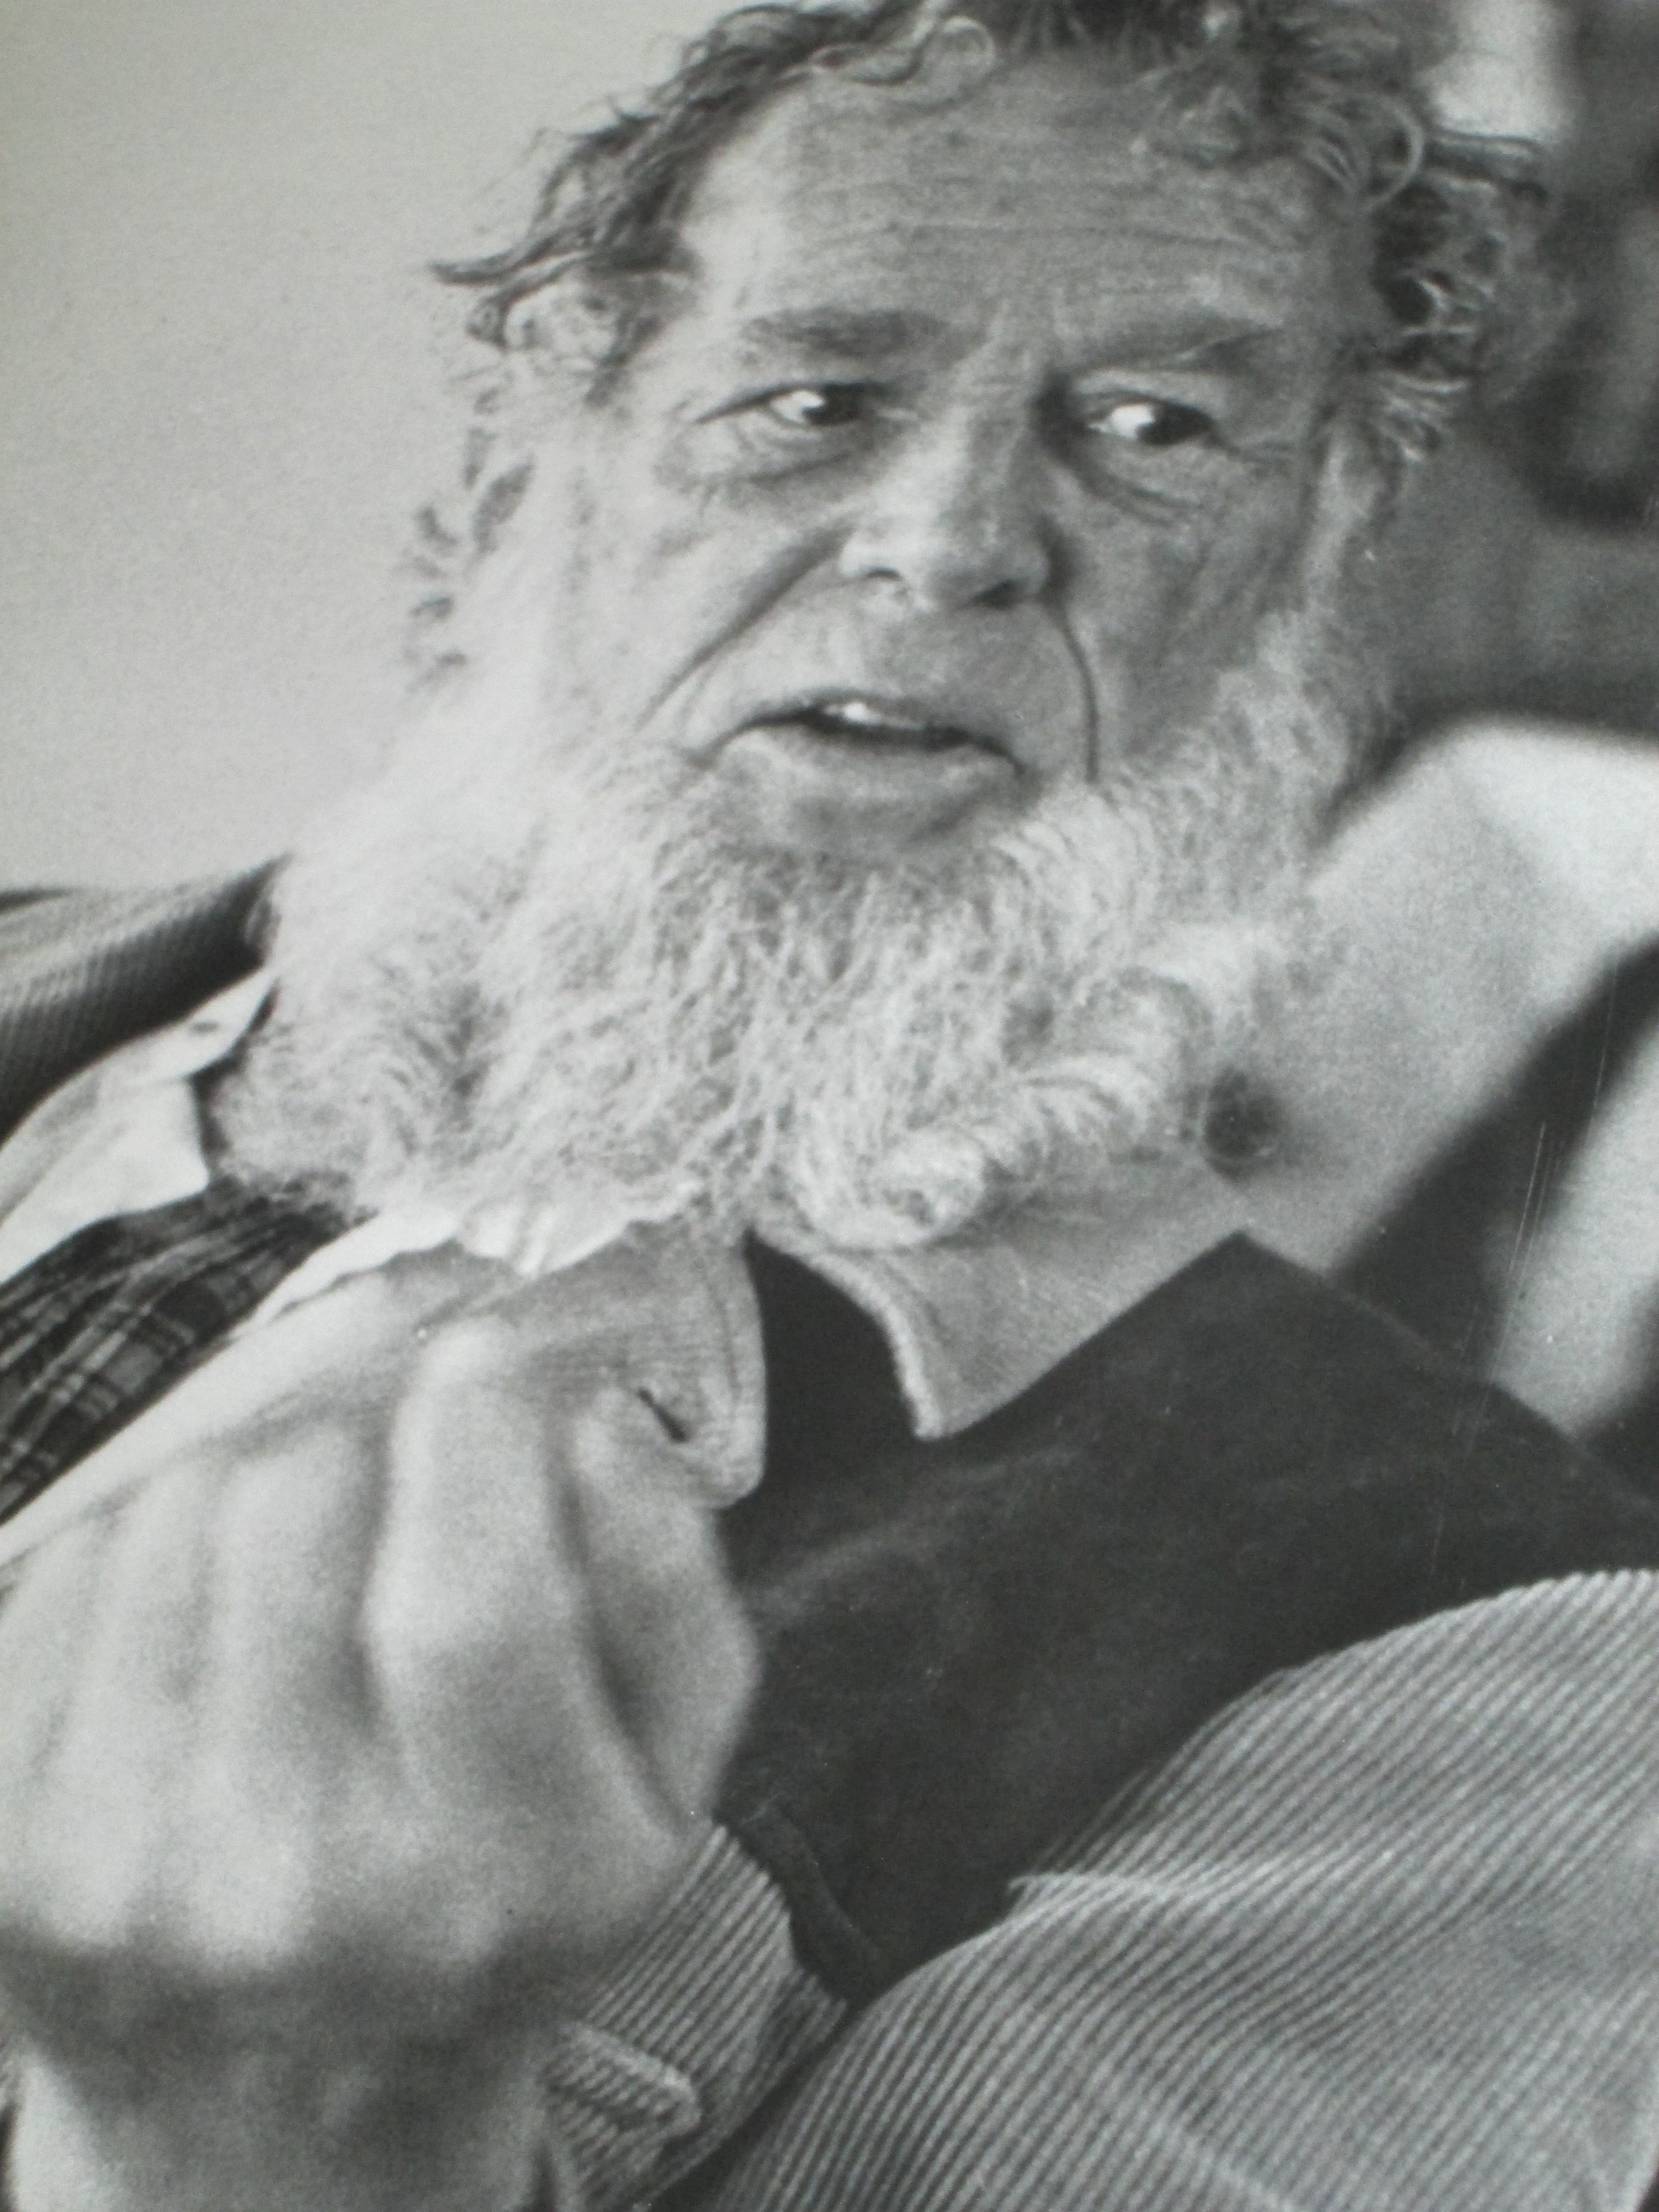 Sterling Hayden, from the archives of the Sausalito Historical Society